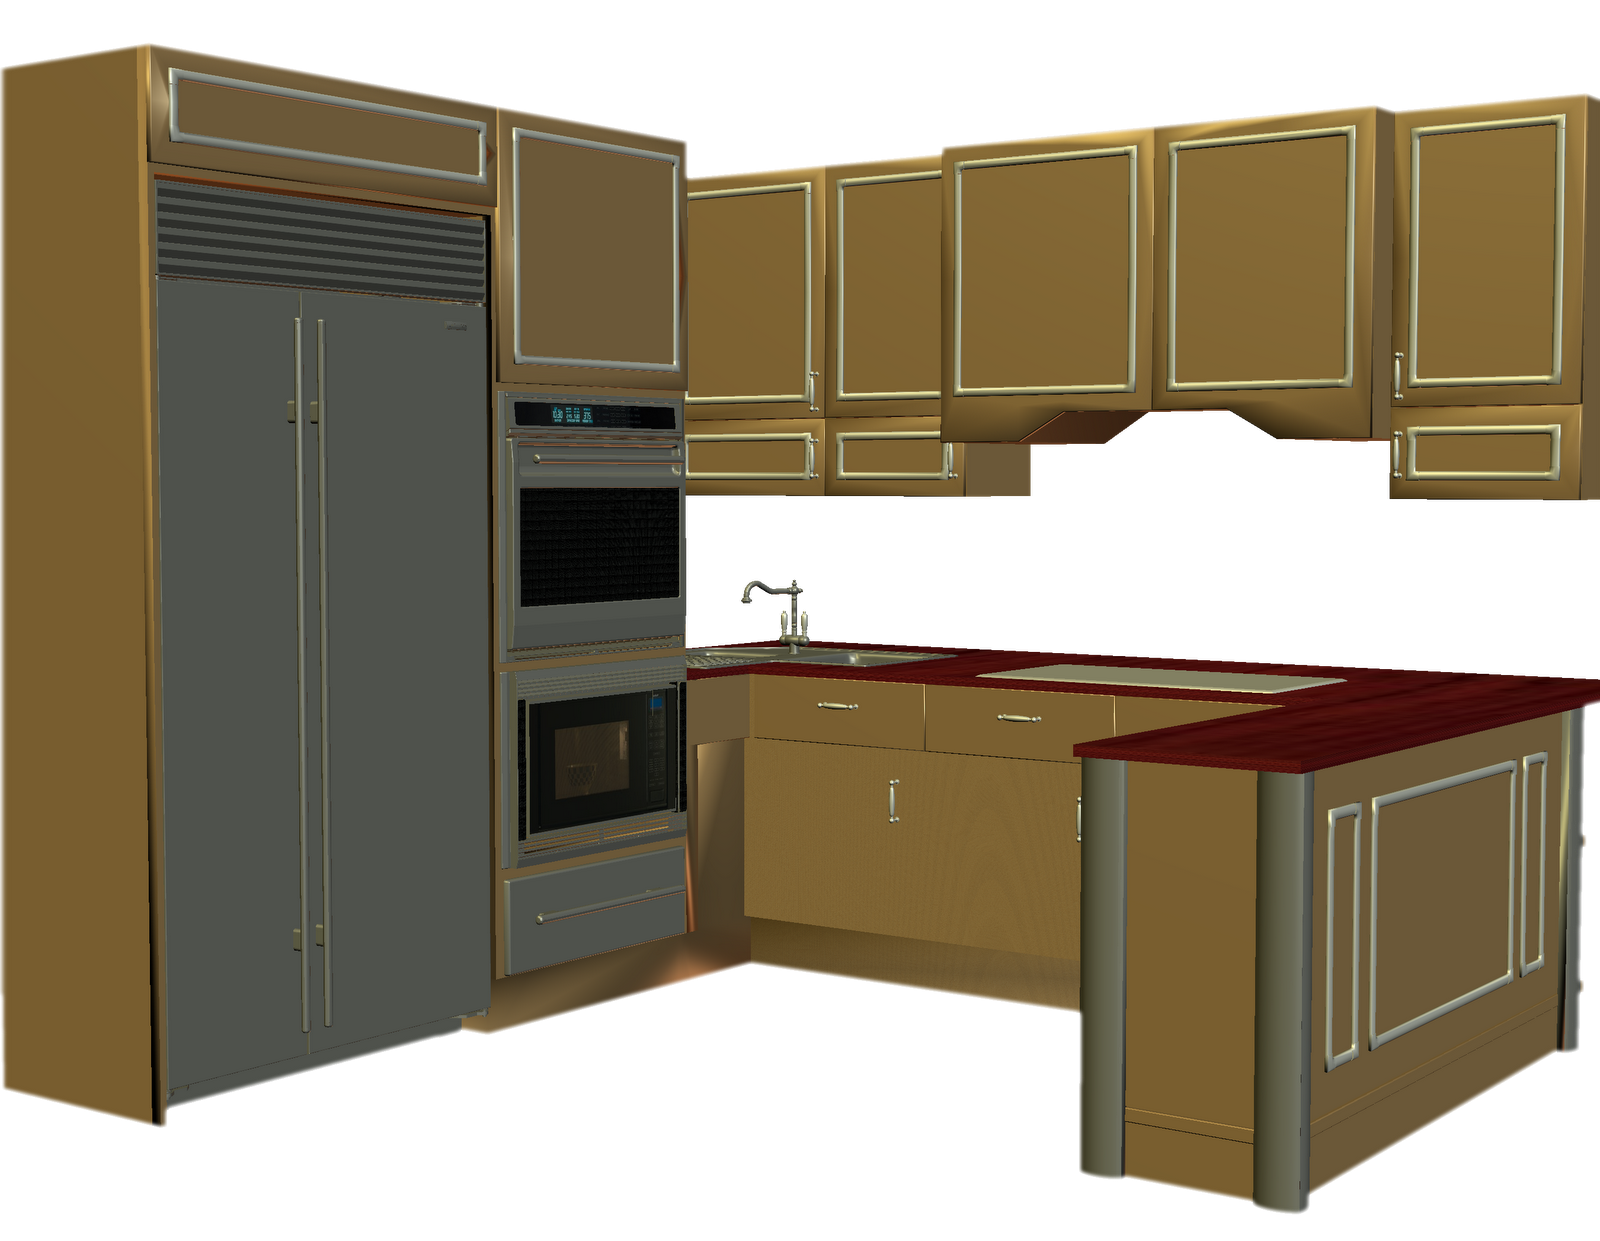 Furniture clipart kitchen room Cliparting Clip images kitchen Kitchen